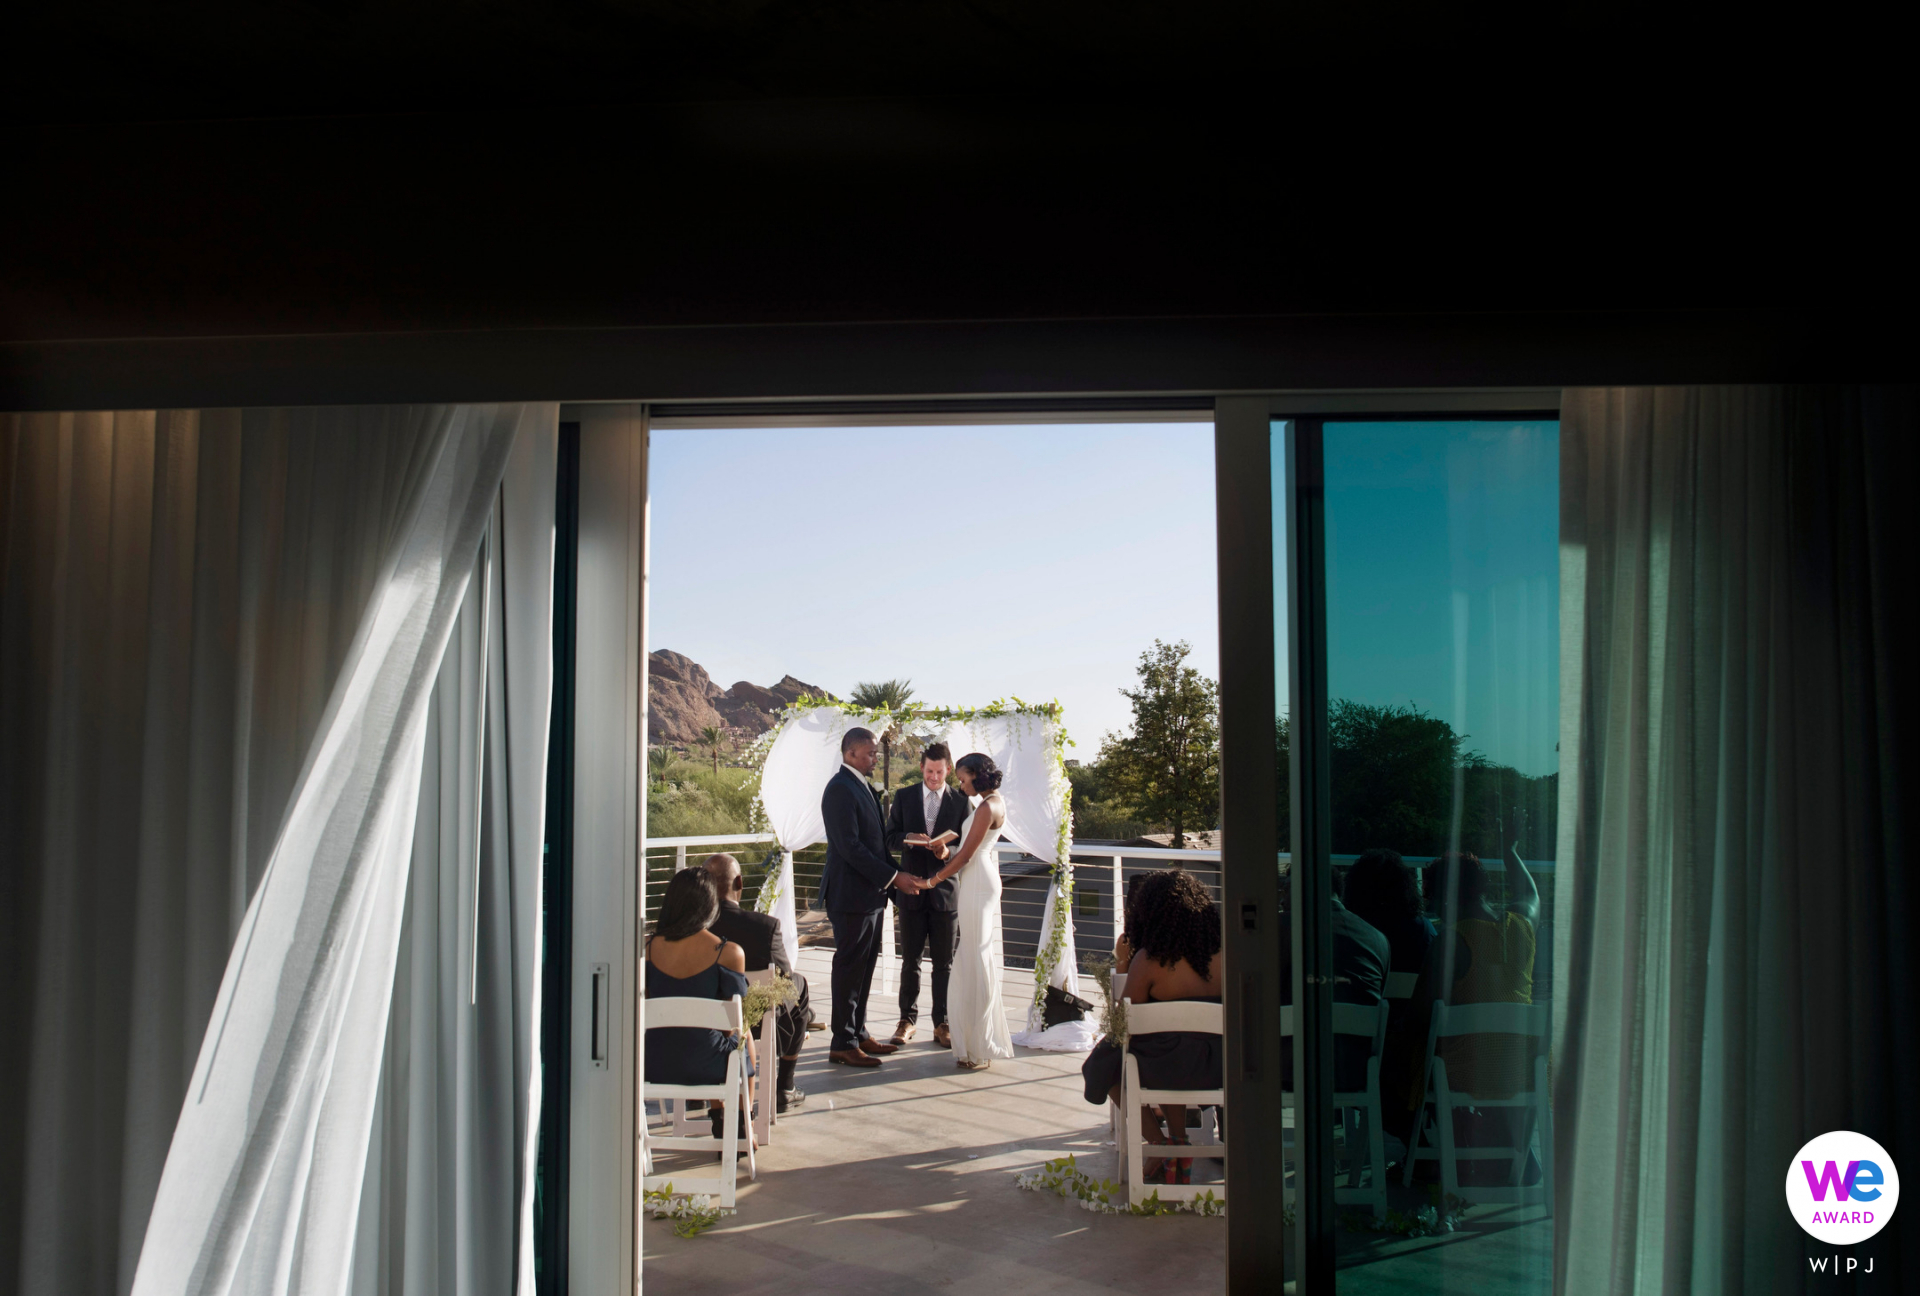 AZ Elopements | Mountain Shadows Resort Scottsdale, Arizona Elopement Photo | From inside the doors of a balcony, we can see the guests watching as the bride and groom stand at a floral arch in front of the officiant